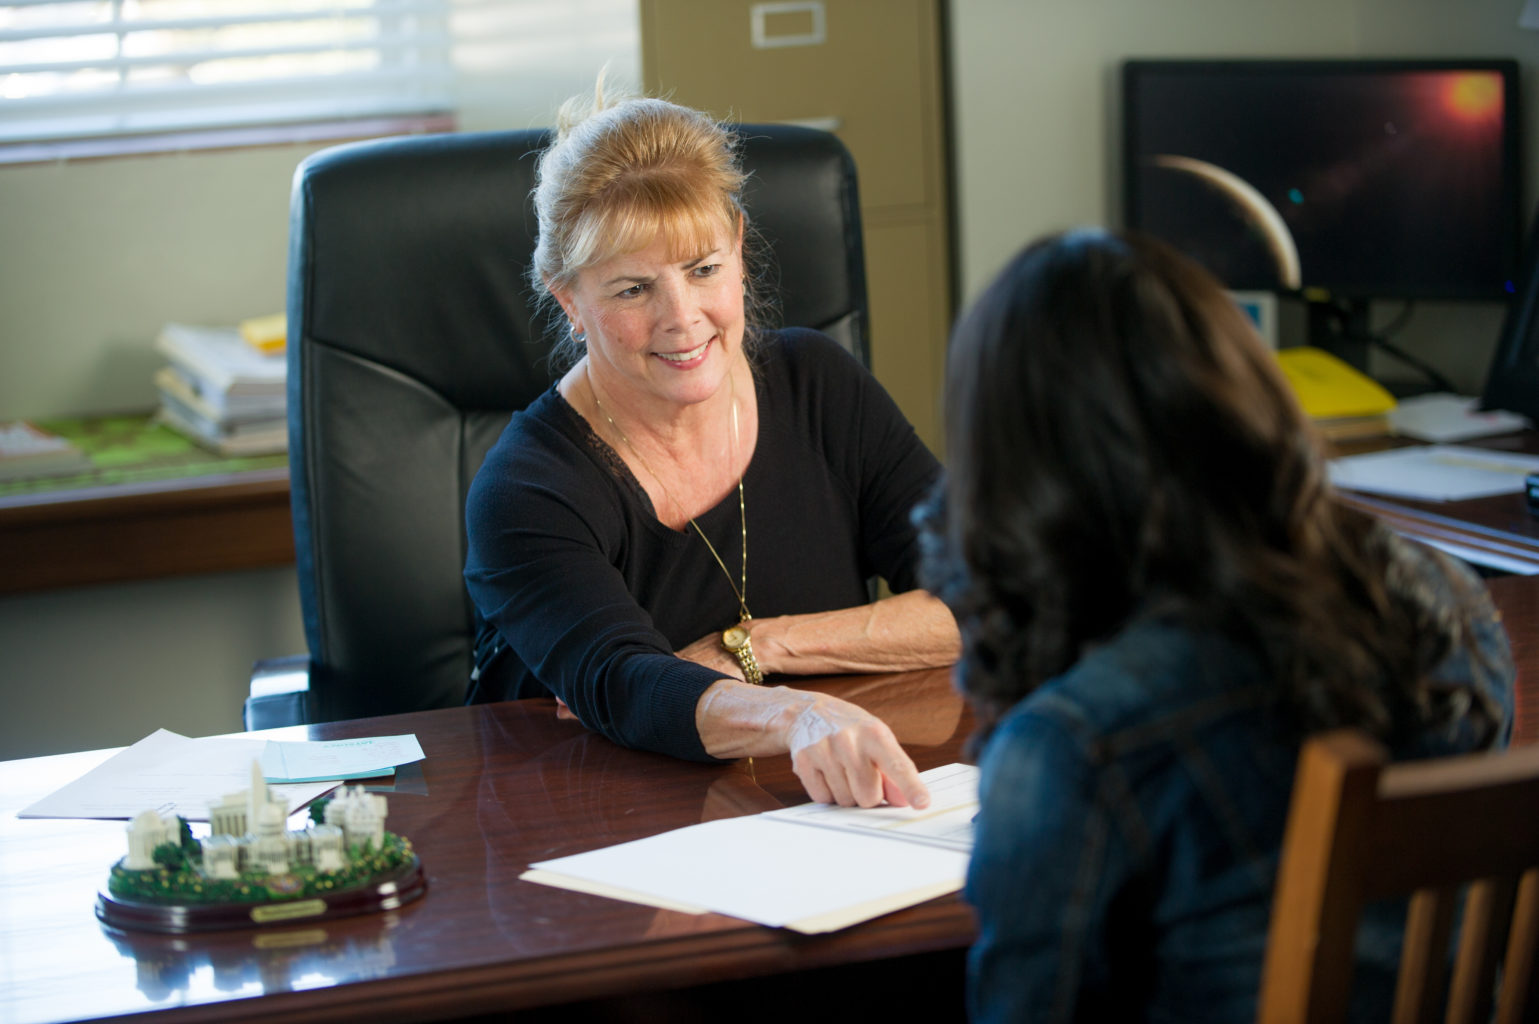 Faculty member smiling with woman at desk while pointing to papers.